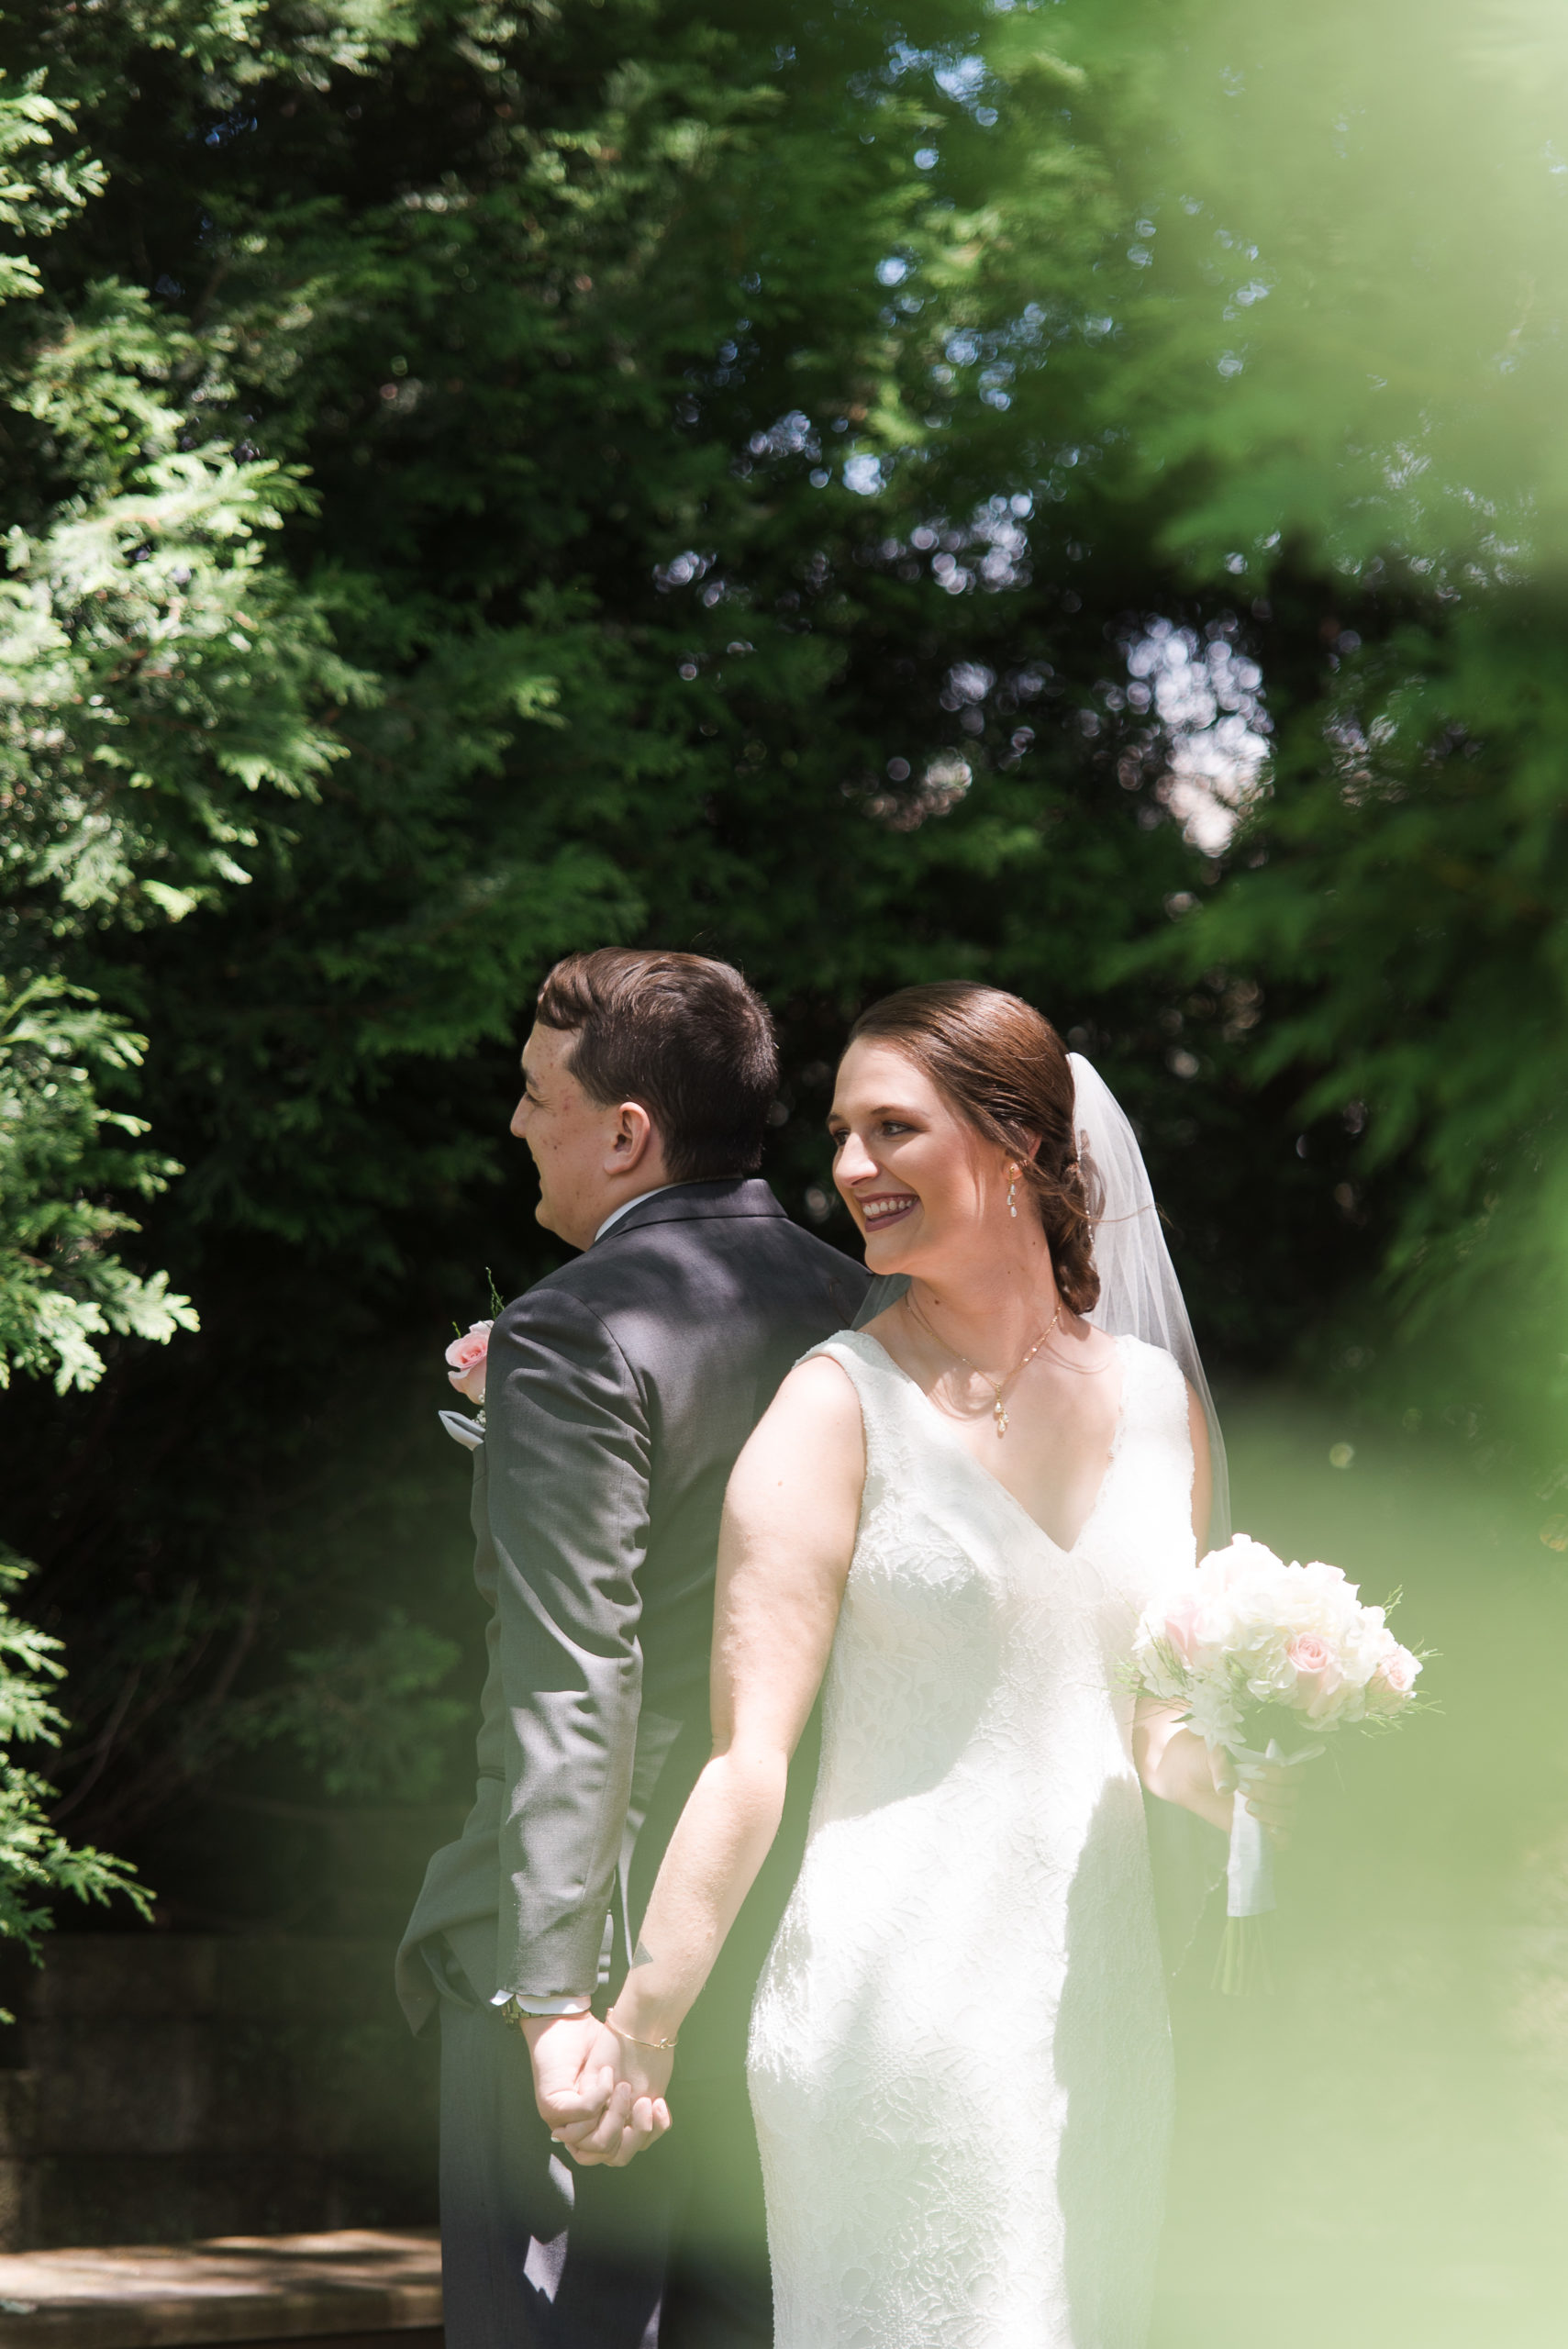 Caucasian male in suit and female in white wedding dress holding hands back to back